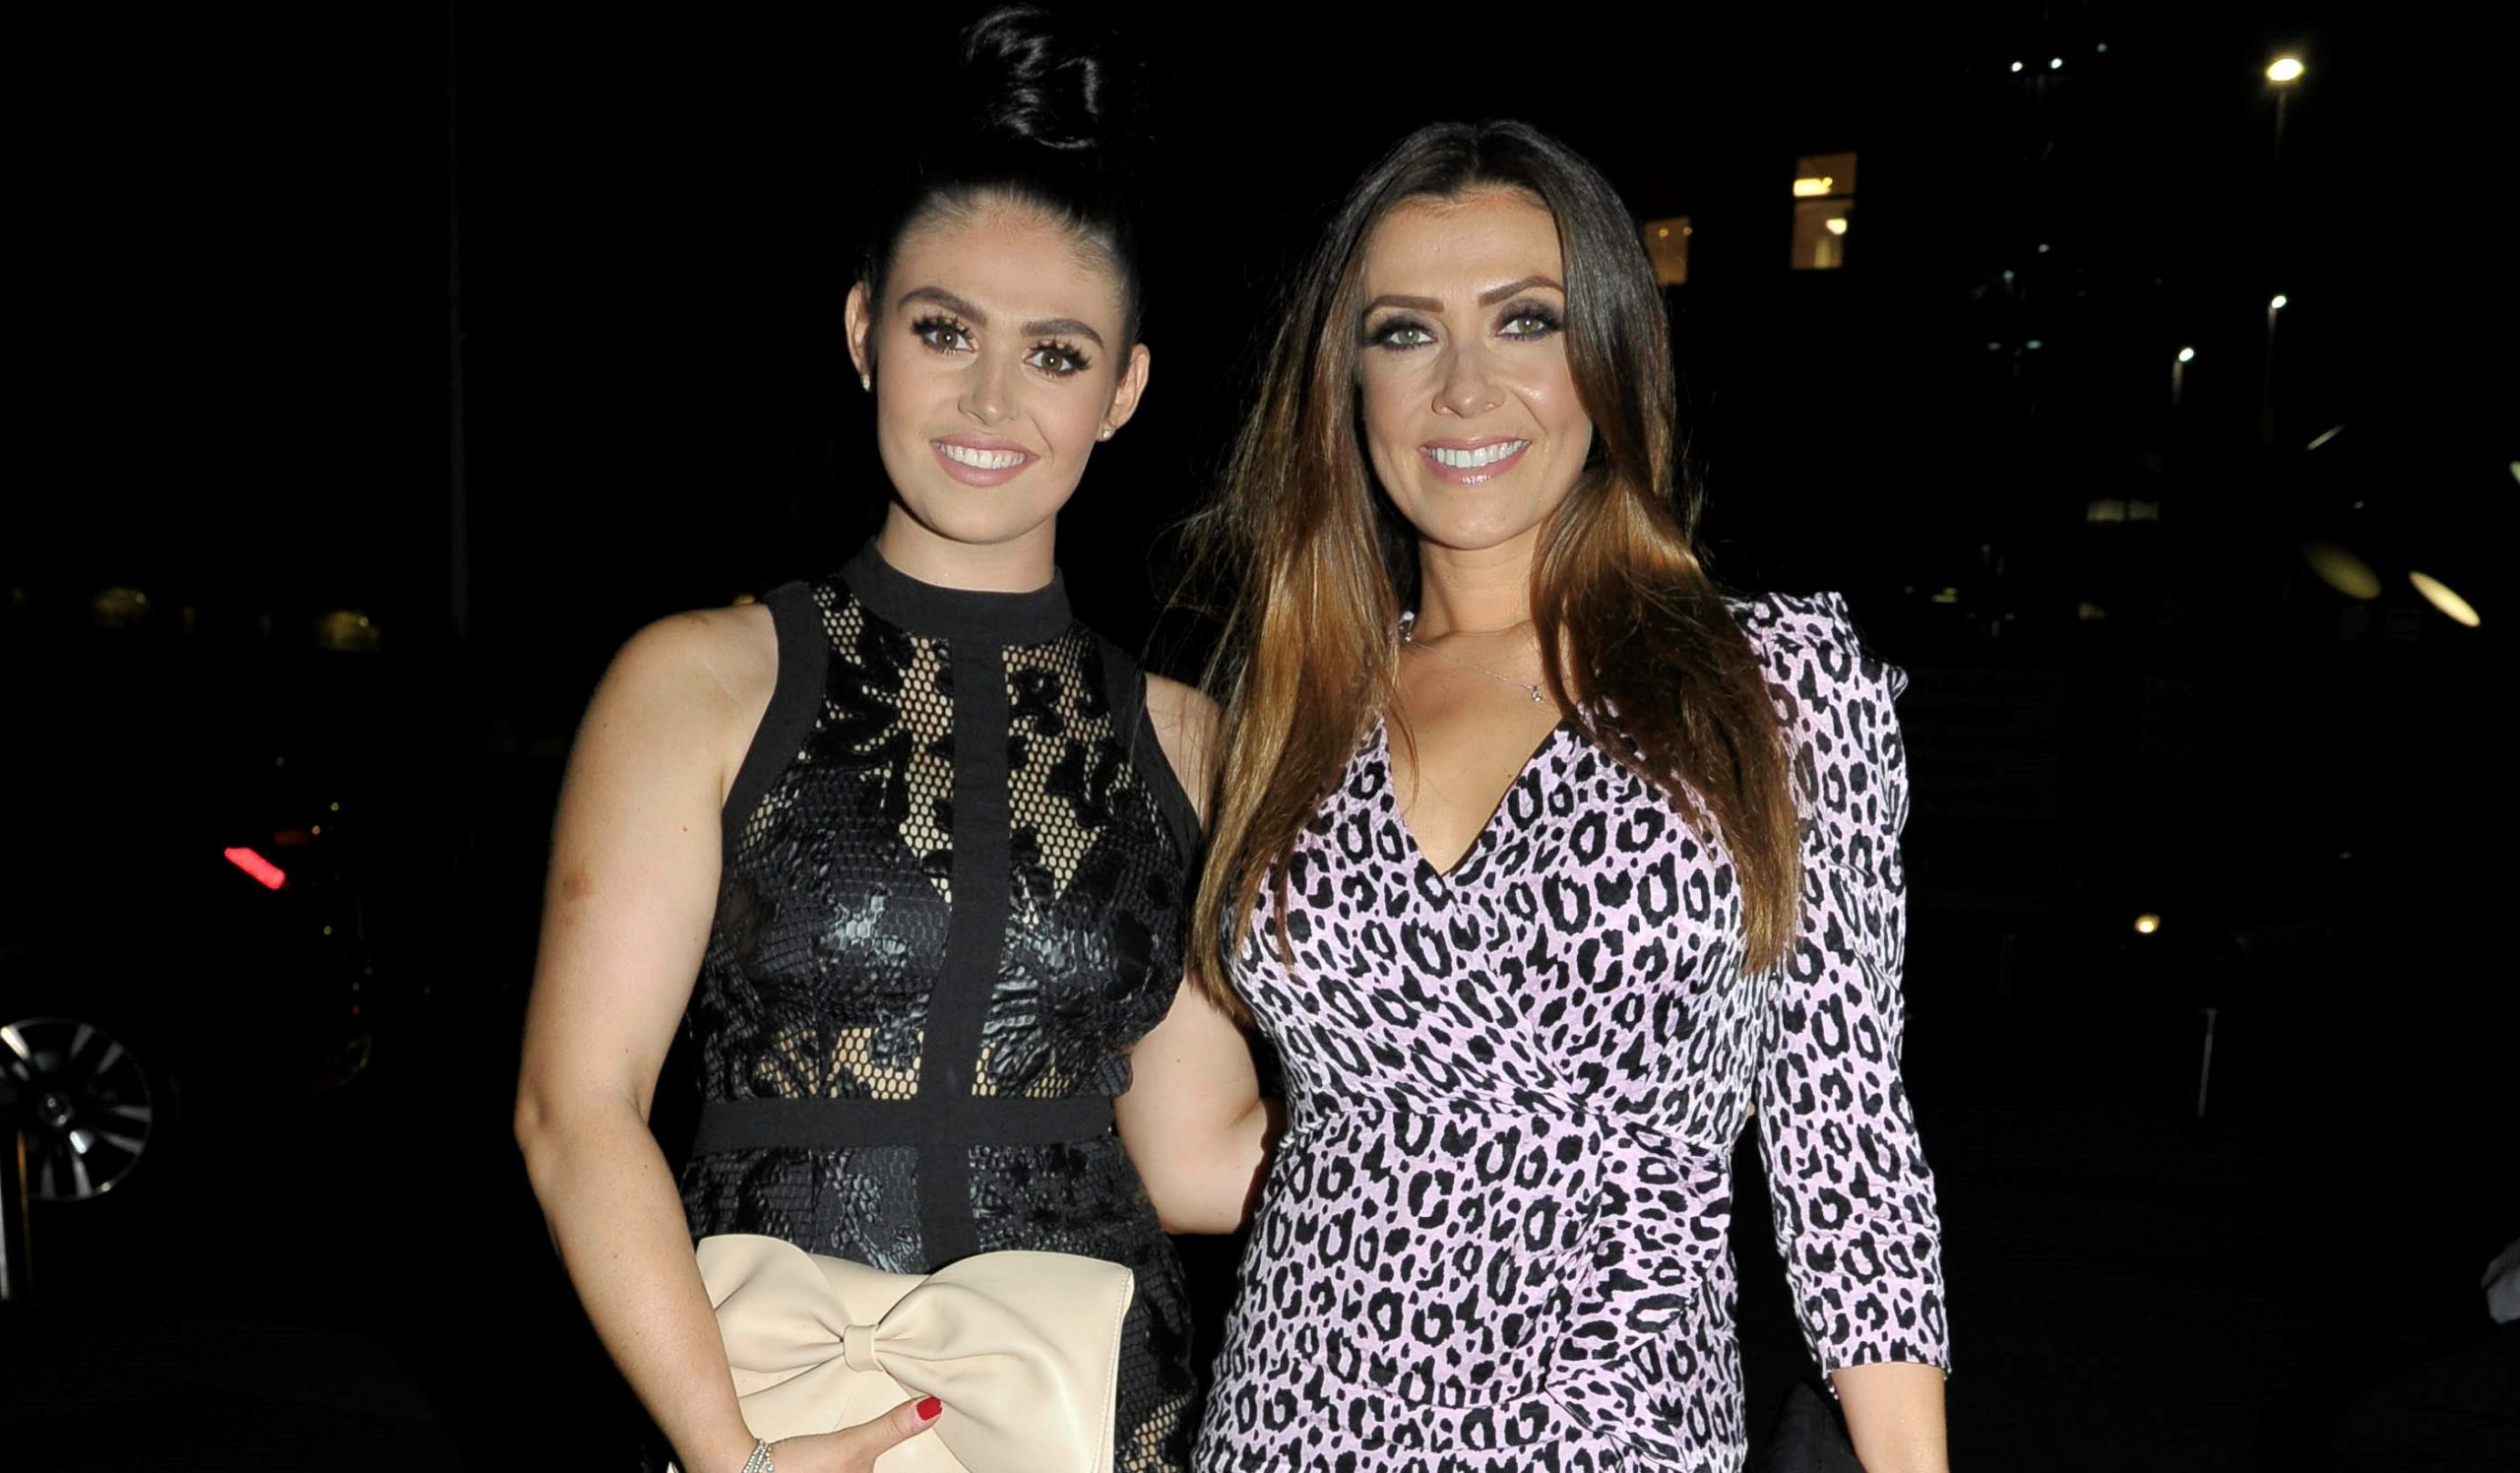 Kym Marsh's fans mistake her 'lookalike' daughter, Emilie, for the actress